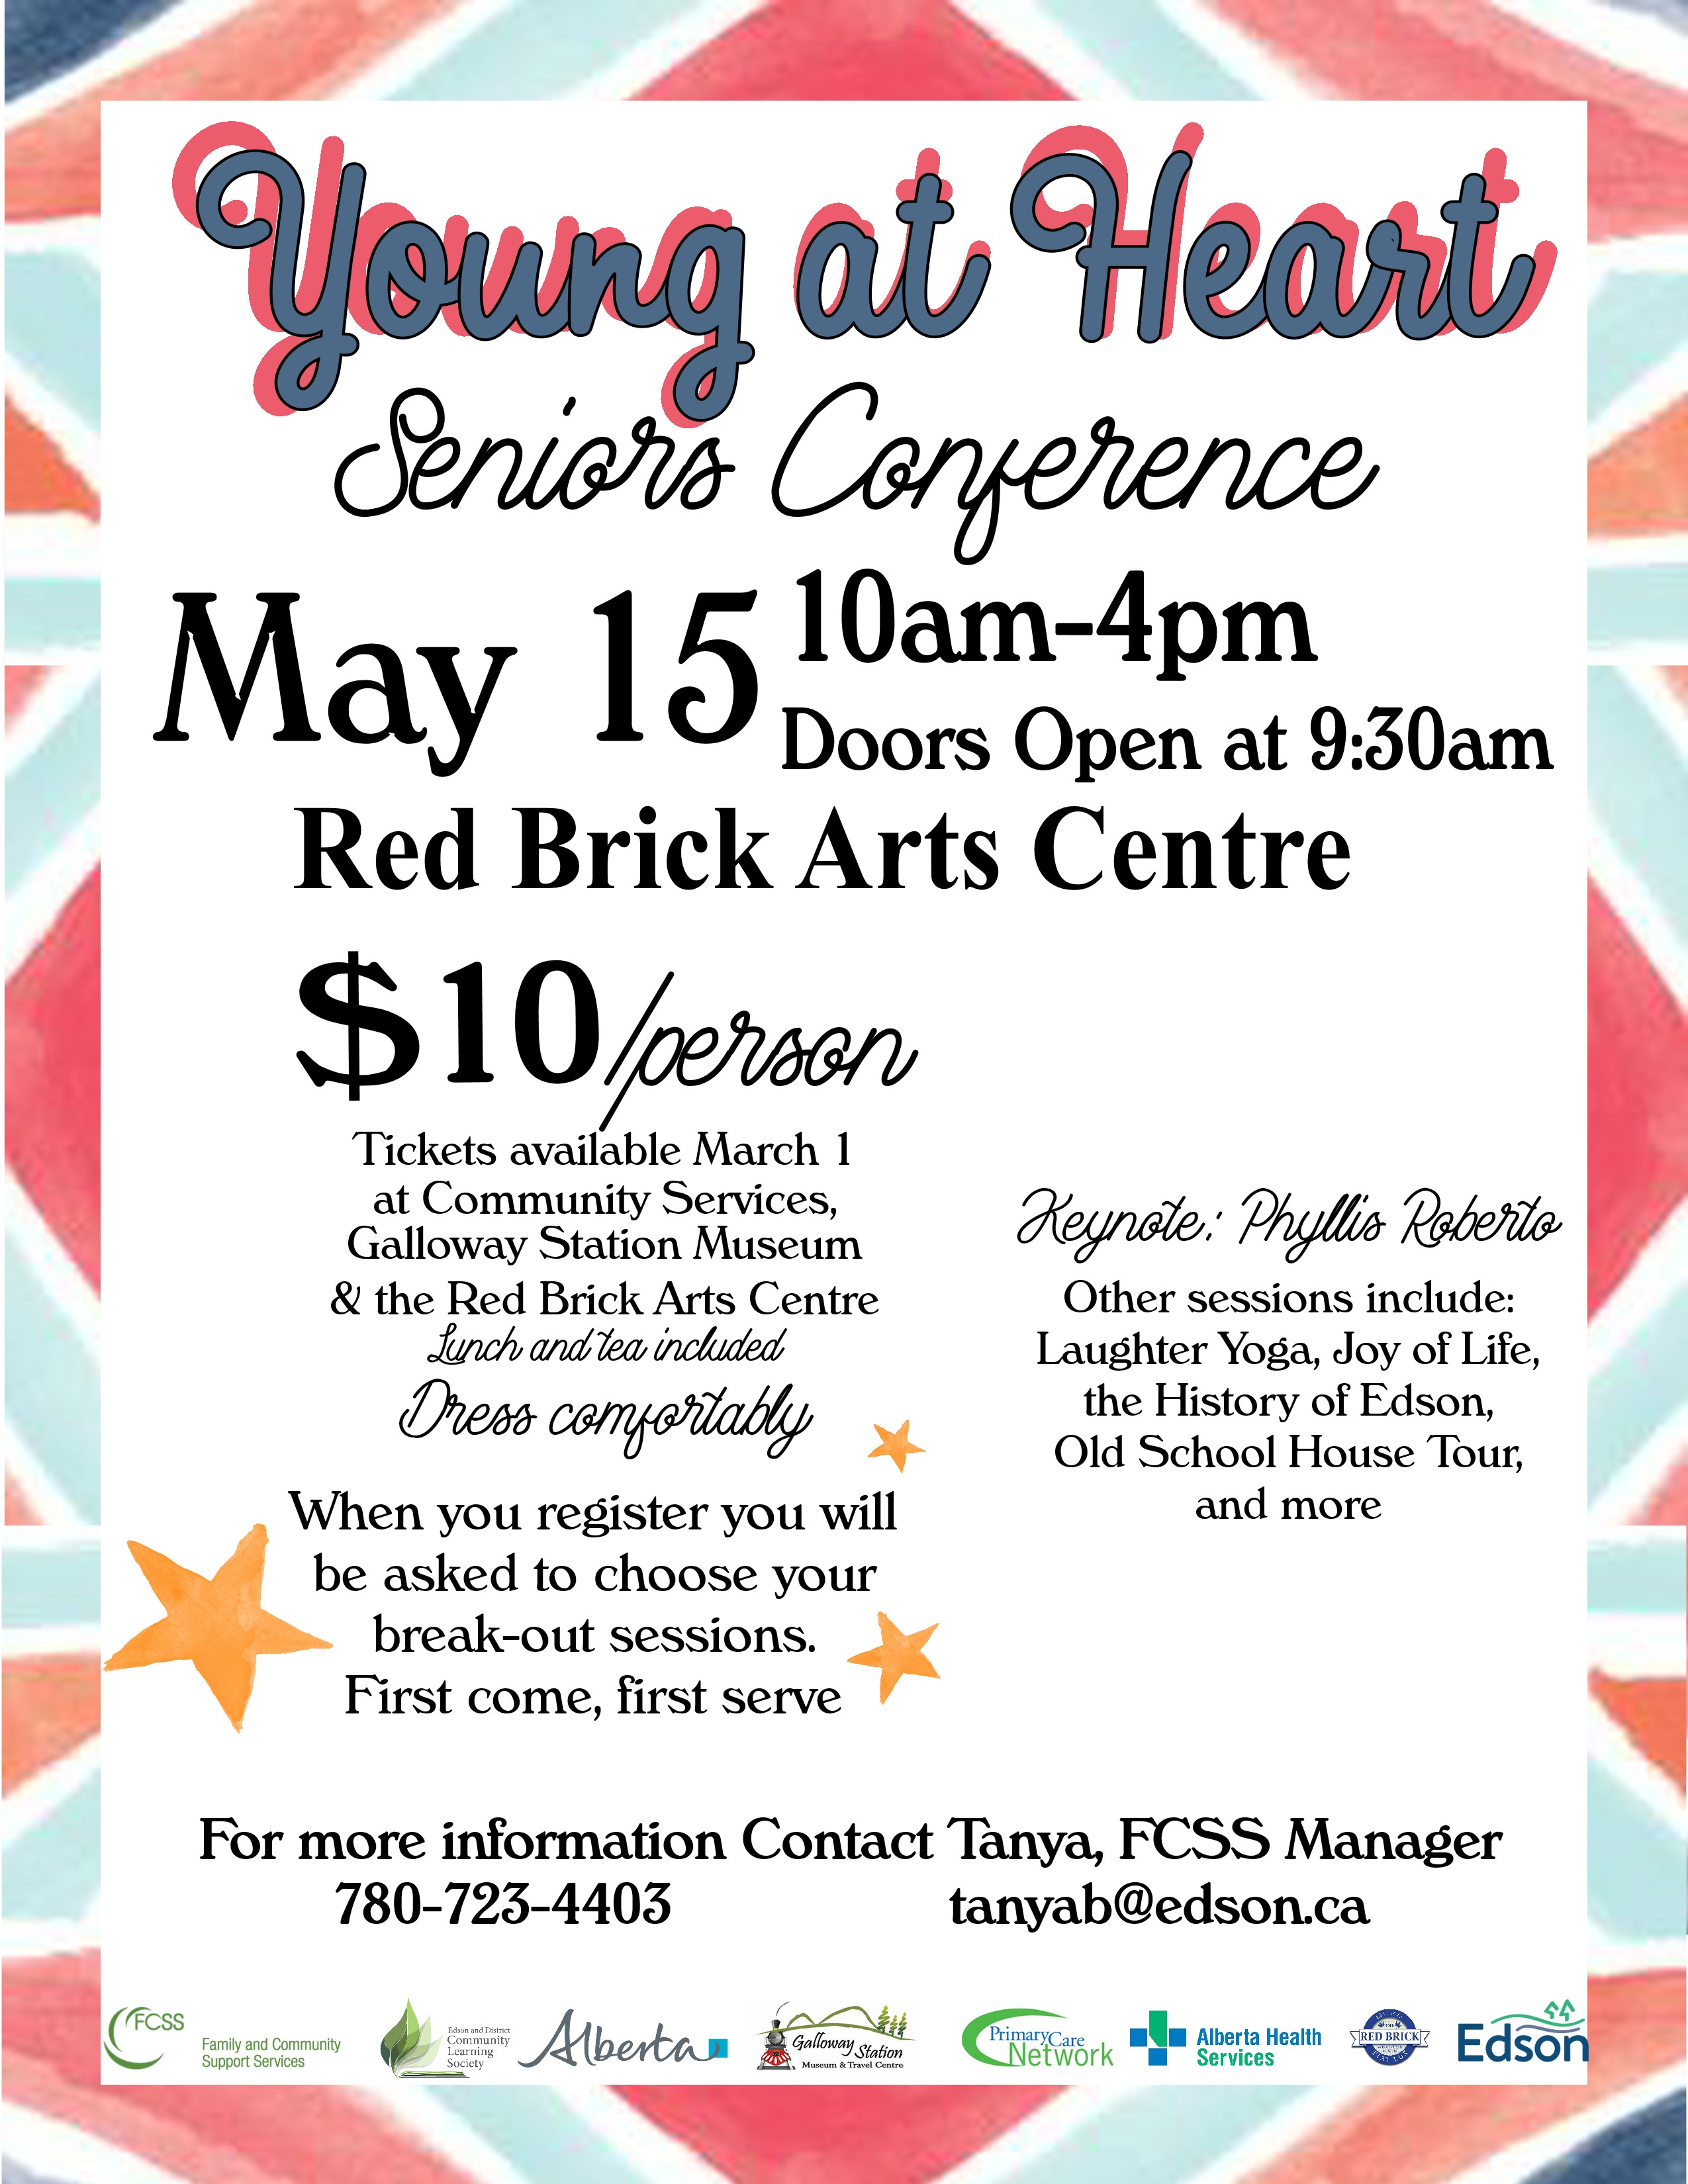 Young at Heart Seniors Conference @ Red Brick Arts Centre | Edson | Alberta | Canada